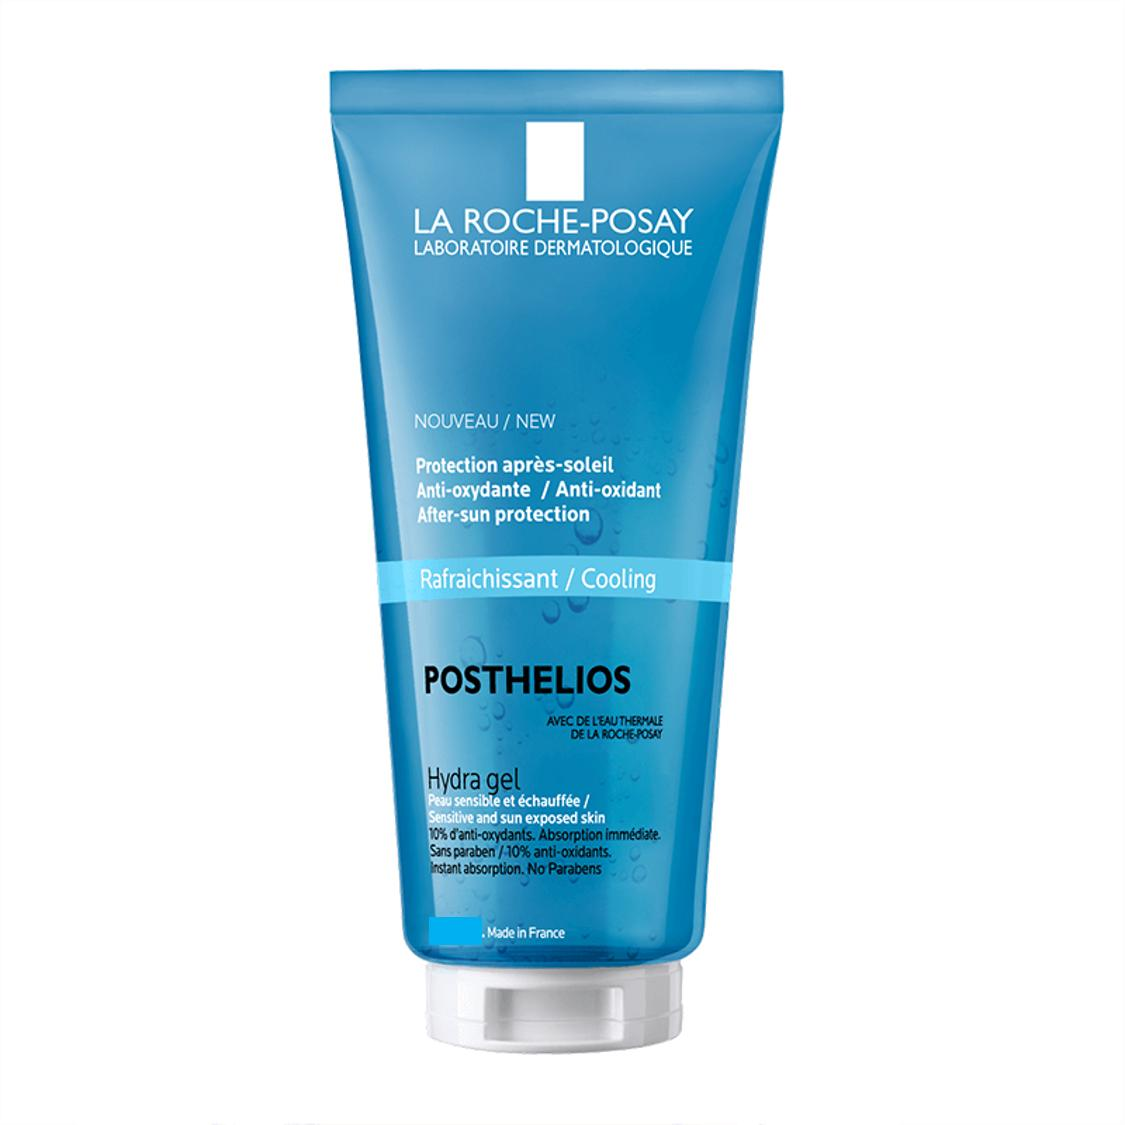 La Roche-Posay After Sun Posthelios Hydra Gel 100ml By Mirage.